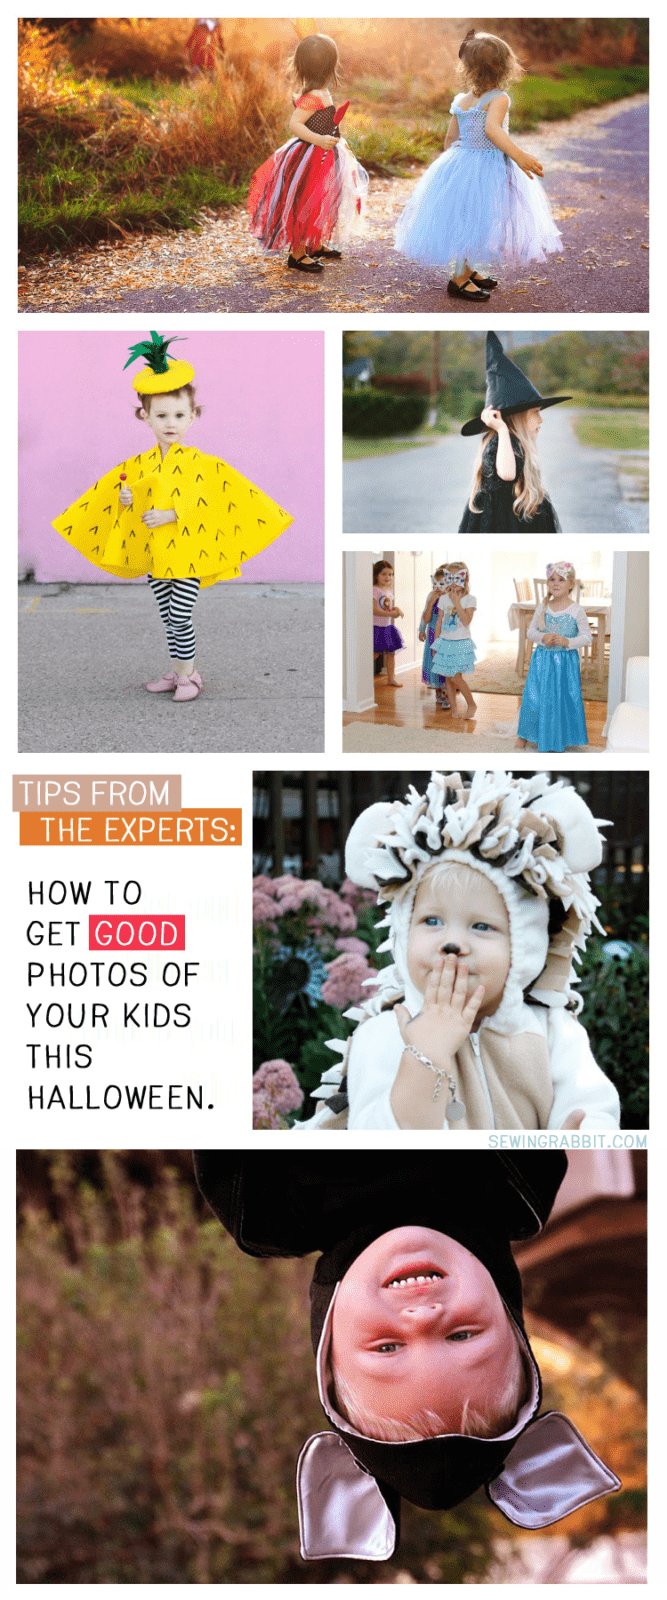 Tips from the Experts - how to get good photos of your kids this Halloween!